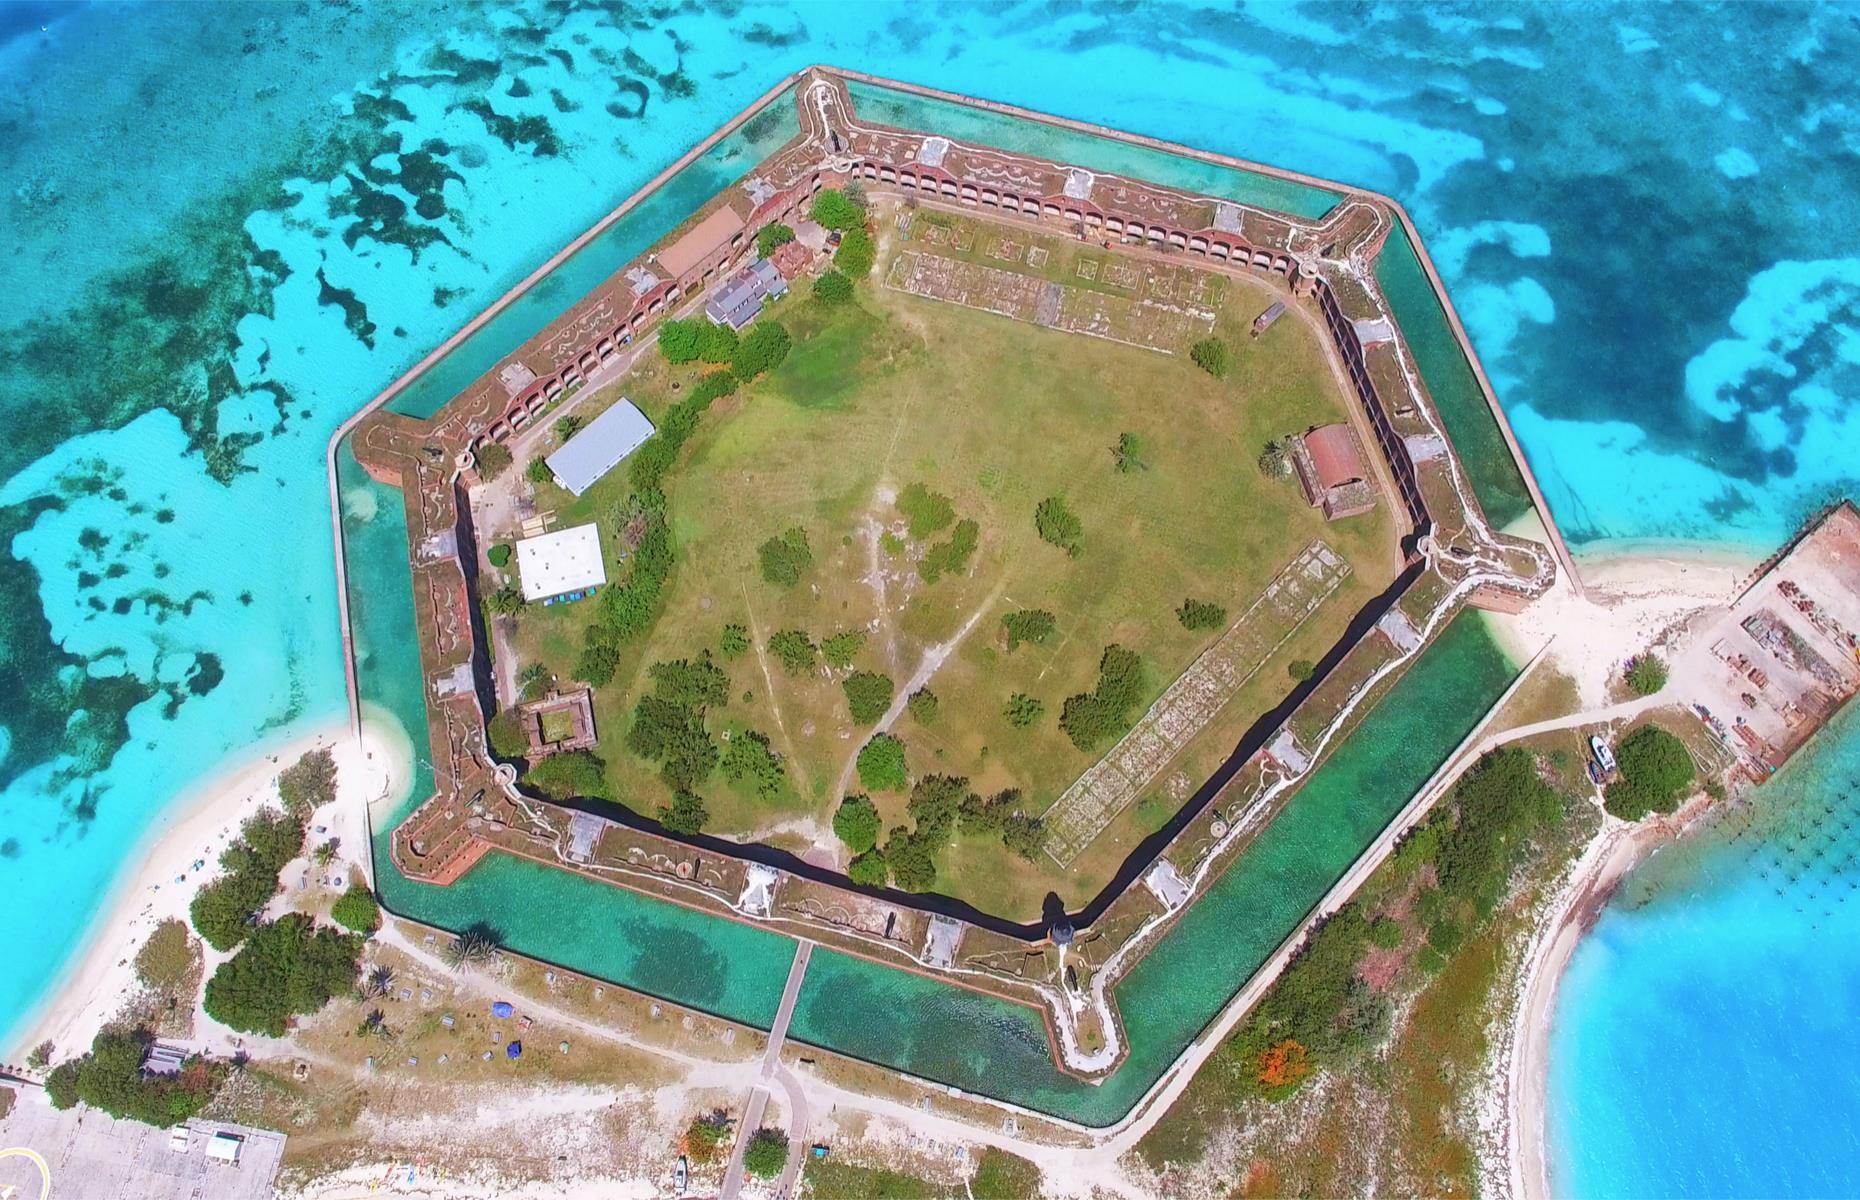 Slide 25 of 51: An unfinished hexagonal fortress in the waters of the Dry Tortugas National Park, Fort Jefferson was intended to protect a deep-water anchorage in the Florida Strait when construction began in 1846. Later, the fort became a military prison but was eventually abandoned. Visitors can usually take a low-altitude flight or ferry out to the bastion, and explore the marine life-filled waters and beaches surrounding it. Check drytortugas.com for updates and current availability.